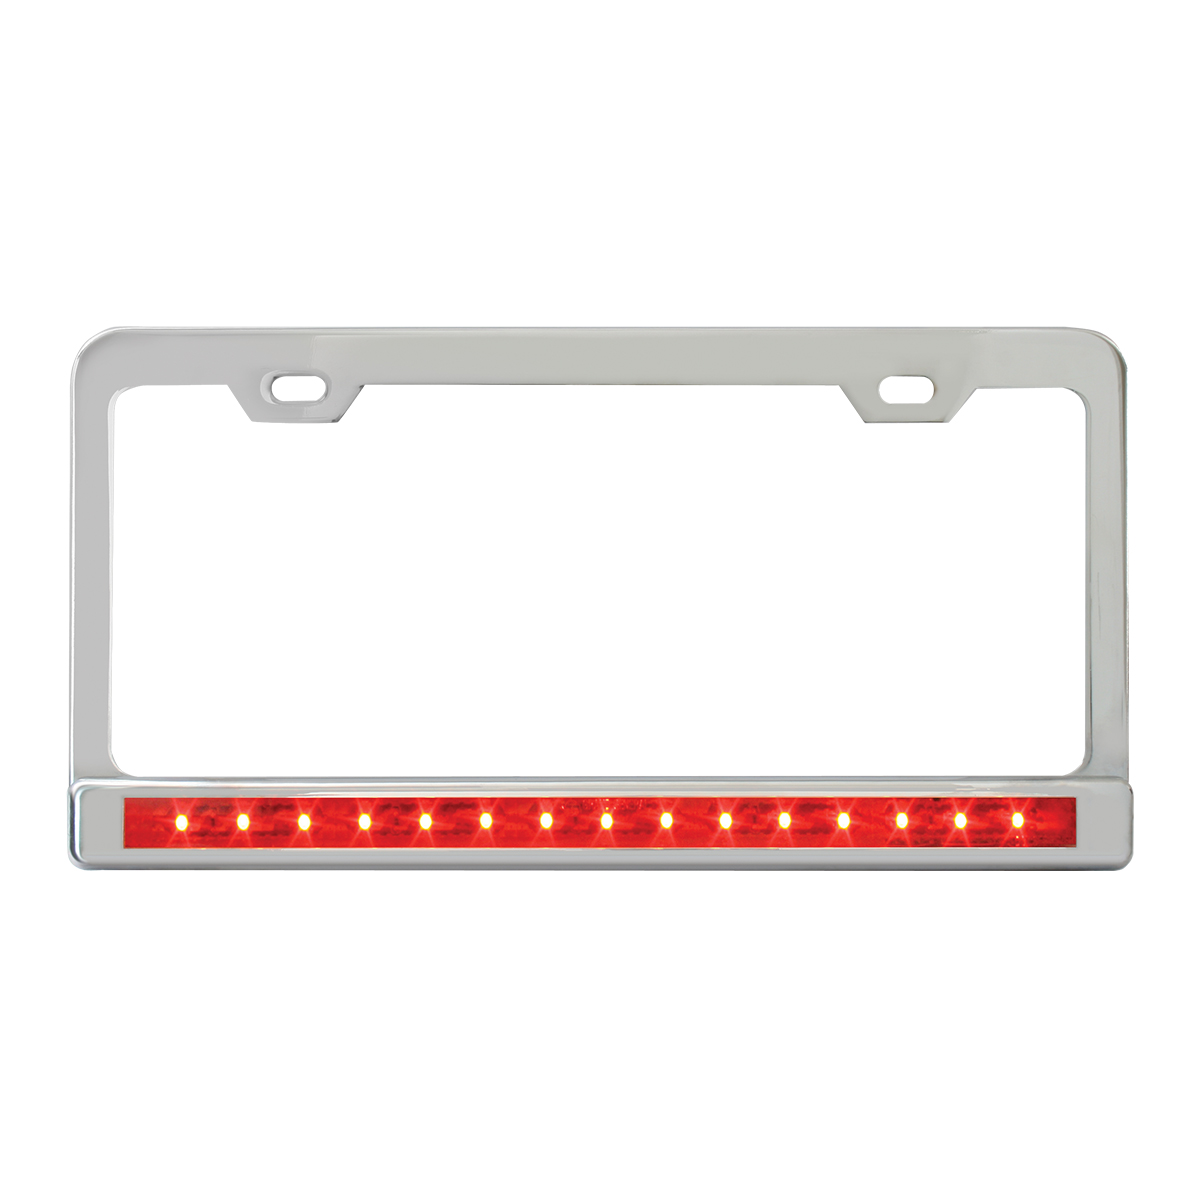 chrome plated steel 2 holes license plate frame with 12 led redred chrome plated steel 2 holes license plate frame with 12 led redred